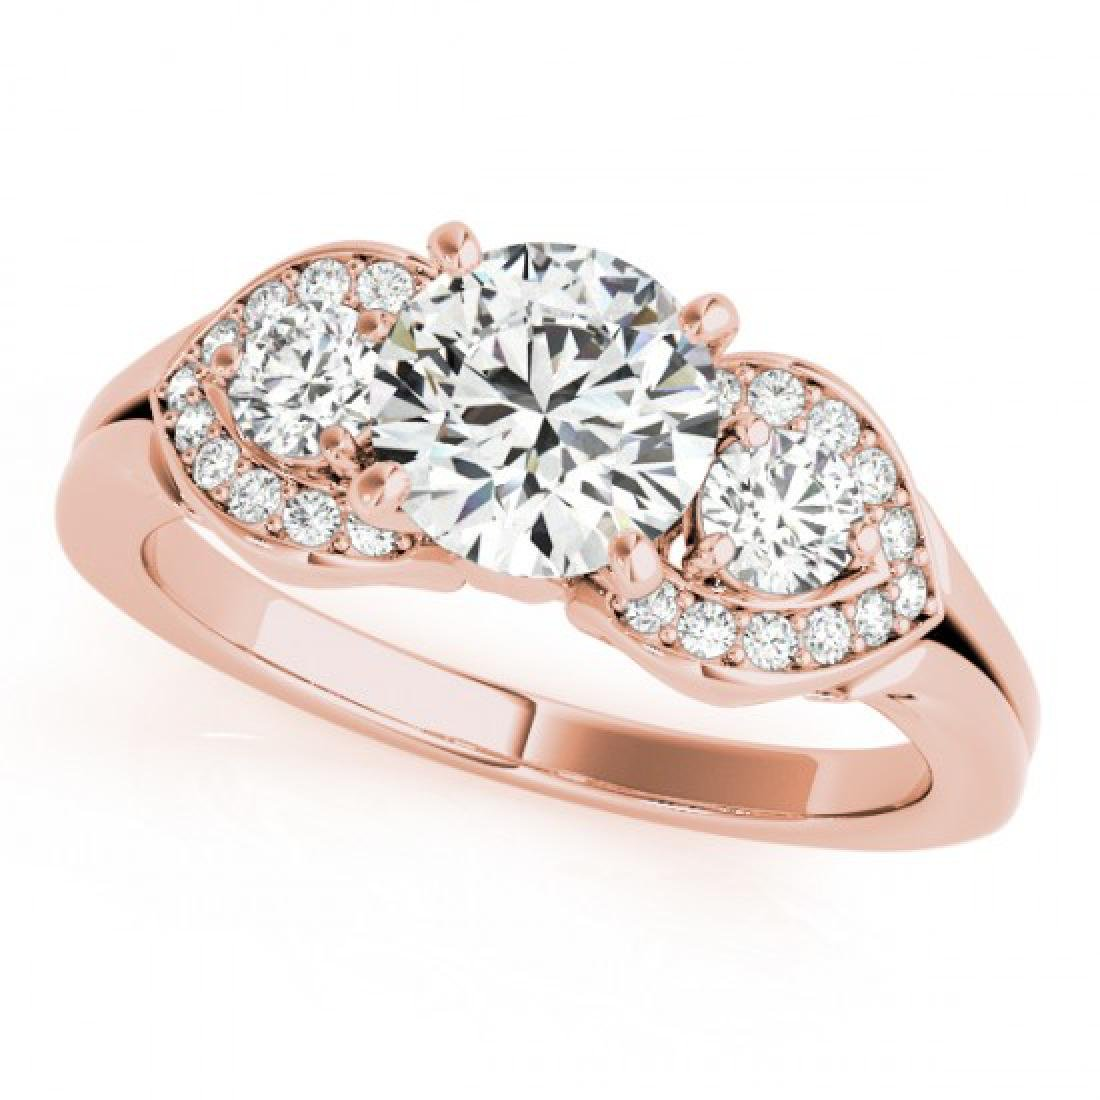 1.7 CTW Certified VS/SI Diamond 3 Stone Solitaire Ring